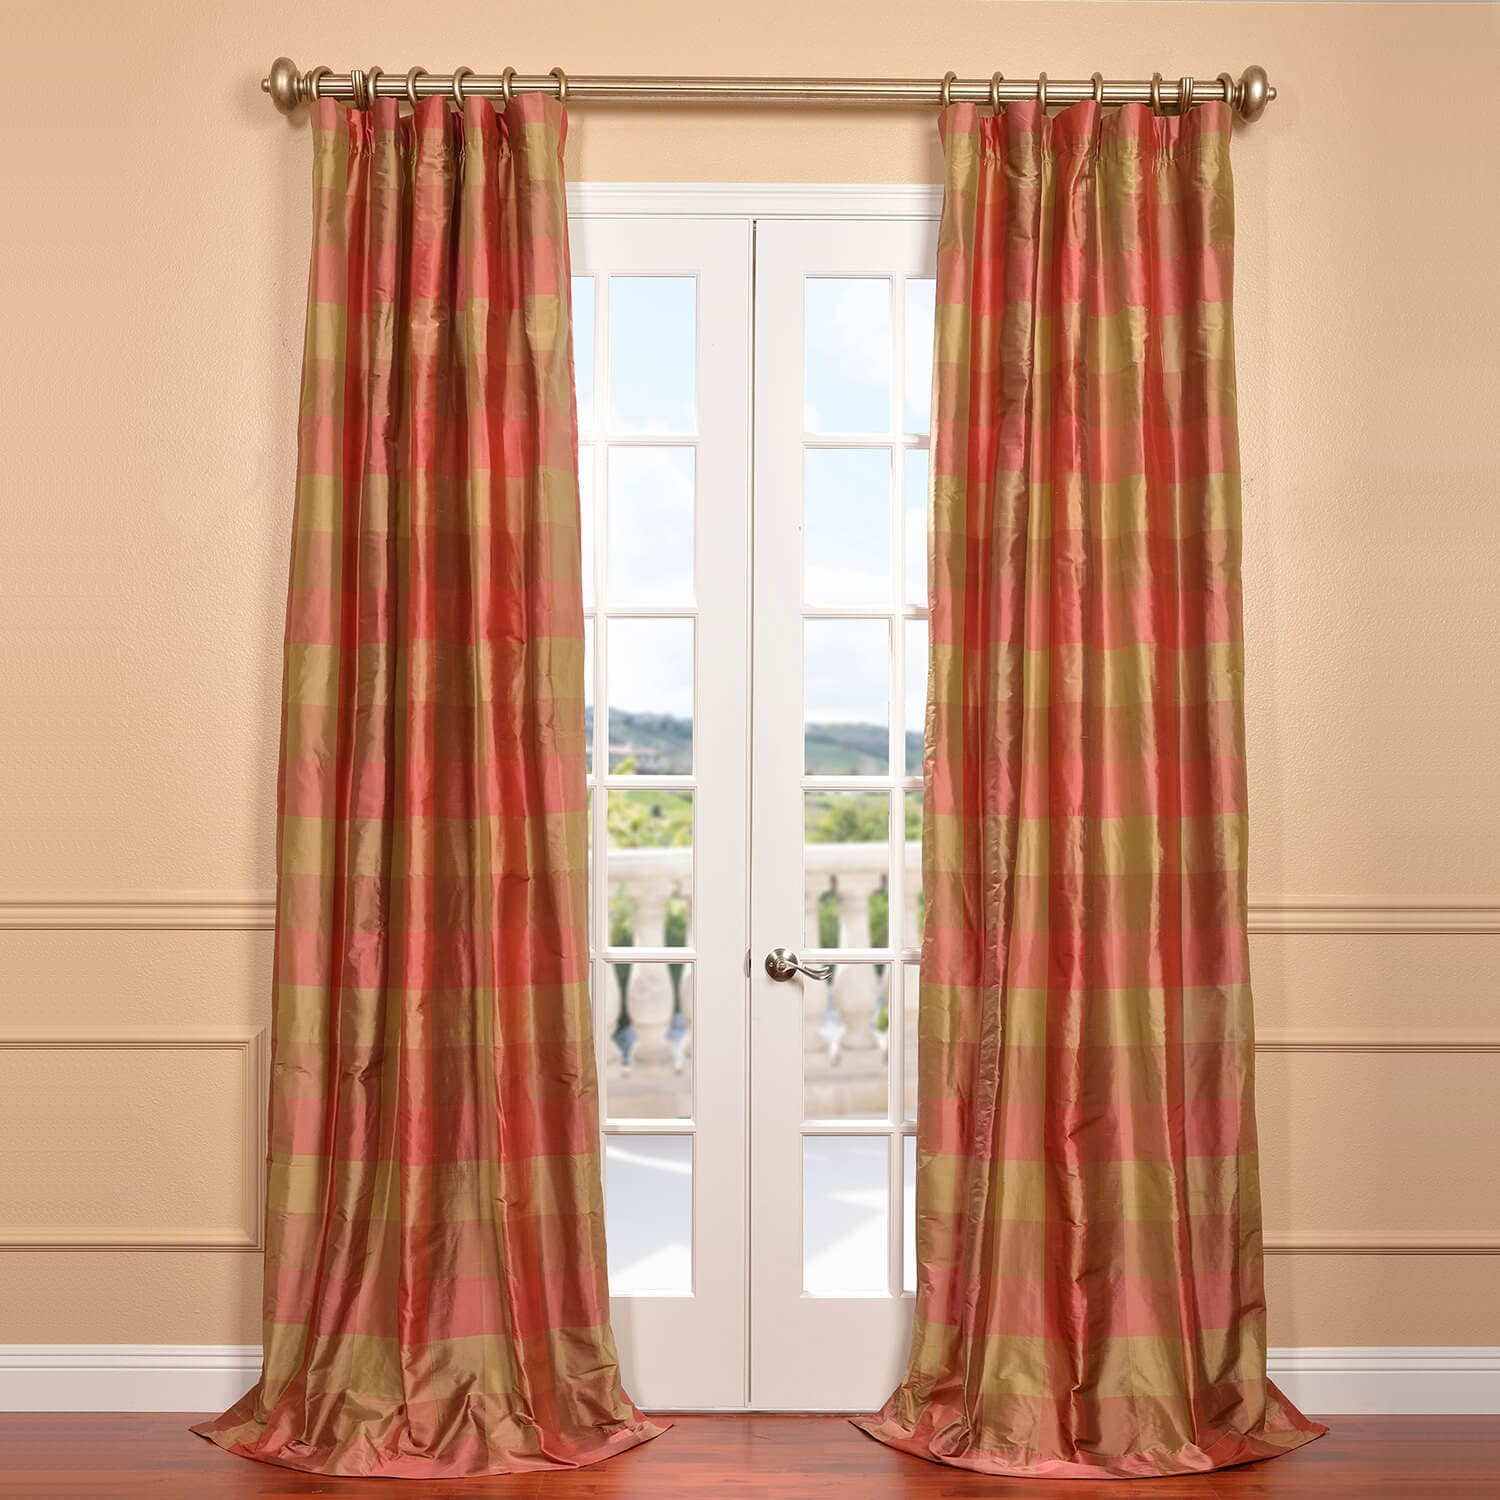 Victorian velvet curtains -  Plush Velvet Curtains By Get Derby Silk Plaid Curtains And Drapes